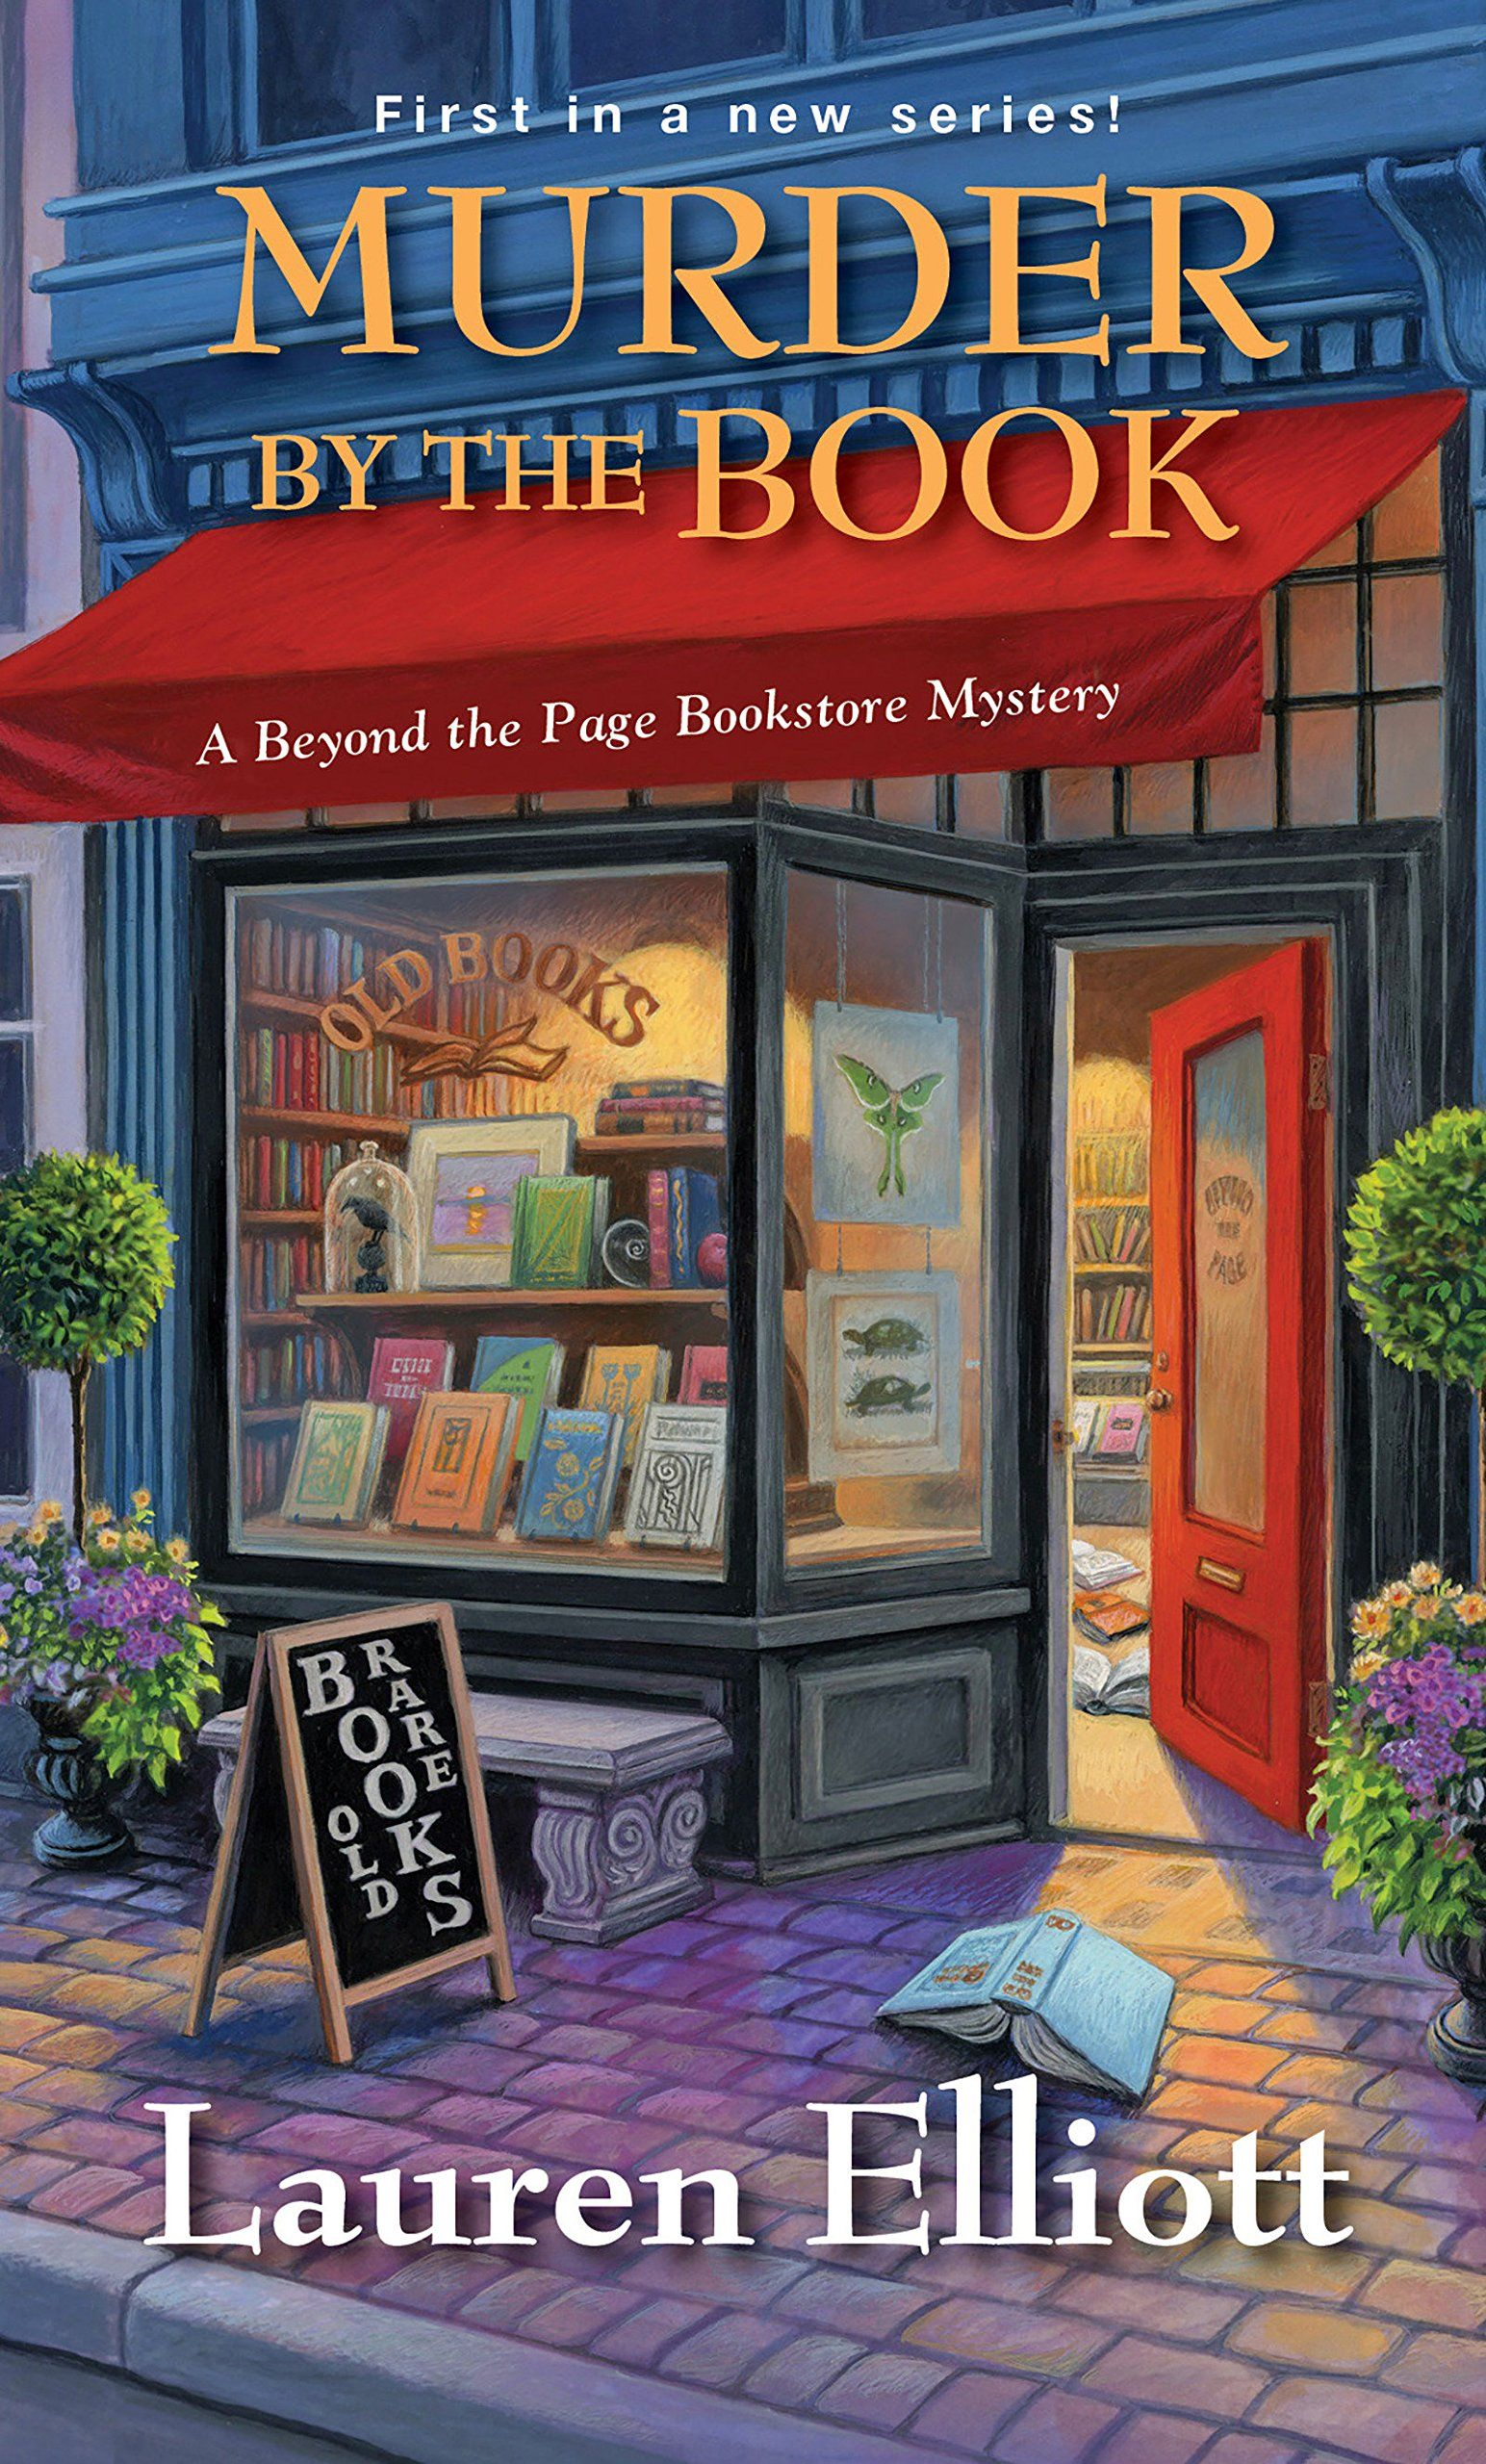 Murder by the Book by Lauren Elliot Clean Cozy Mystery Book Review is part of Cozy mystery book, Cozy mysteries, Mystery book, Cozy mystery books, Books, Mystery books - I love finding brand new cozy mystery book series  Murder by the Book by Lauren Elliot is Book One in the Beyond the Page Bookstore Mystery Series